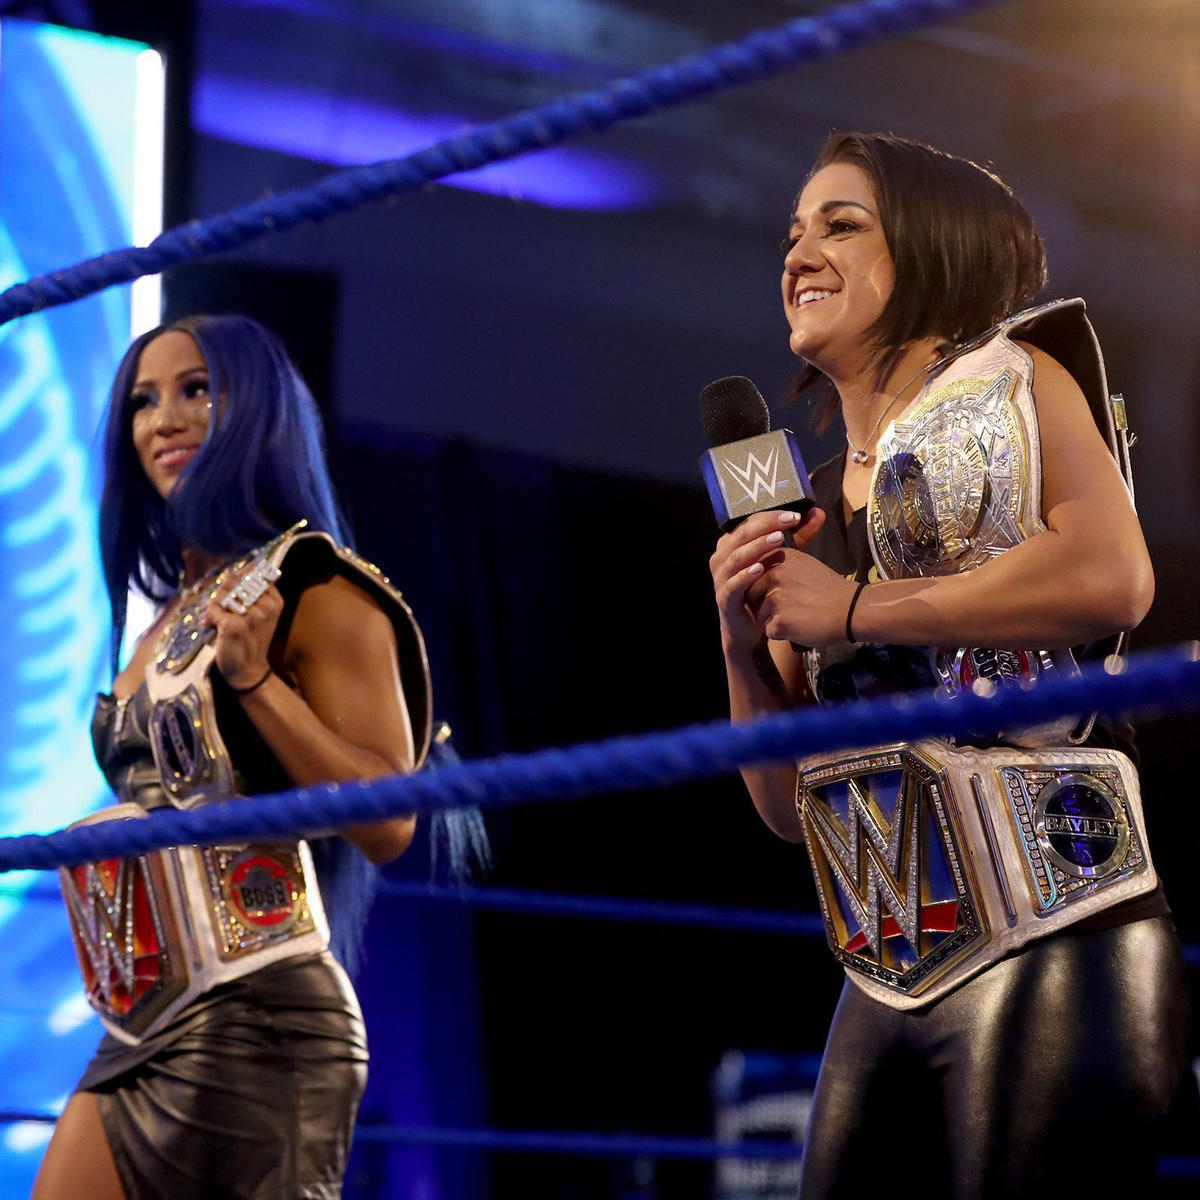 WWE Summerslam: Stephanie McMahon Confirms Two Women's Title Matches 2